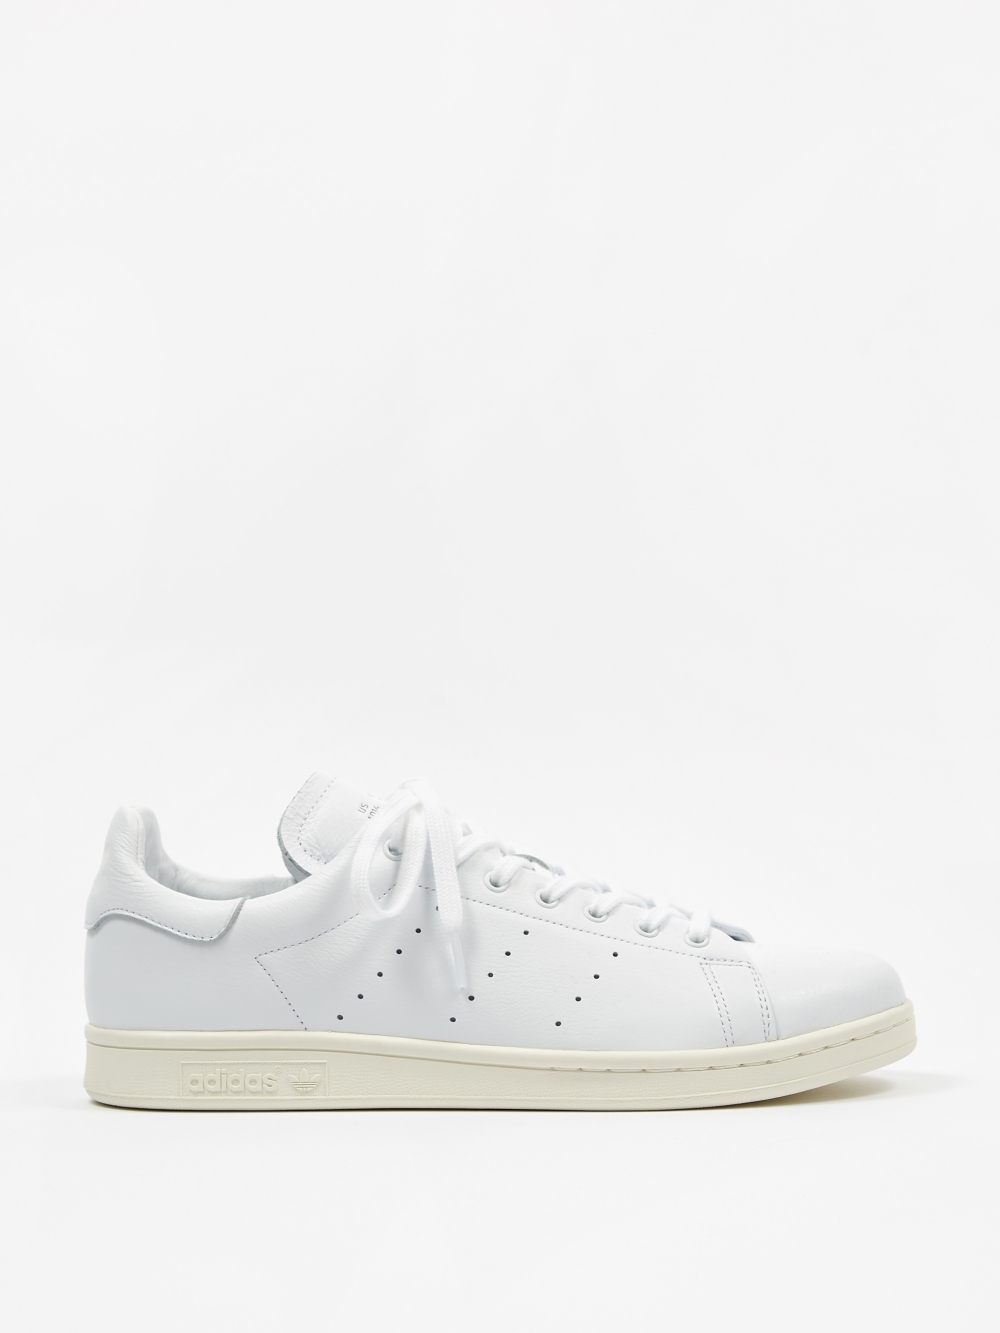 detailed look 064a0 4dab4 Adidas Stan Smith - Triple White